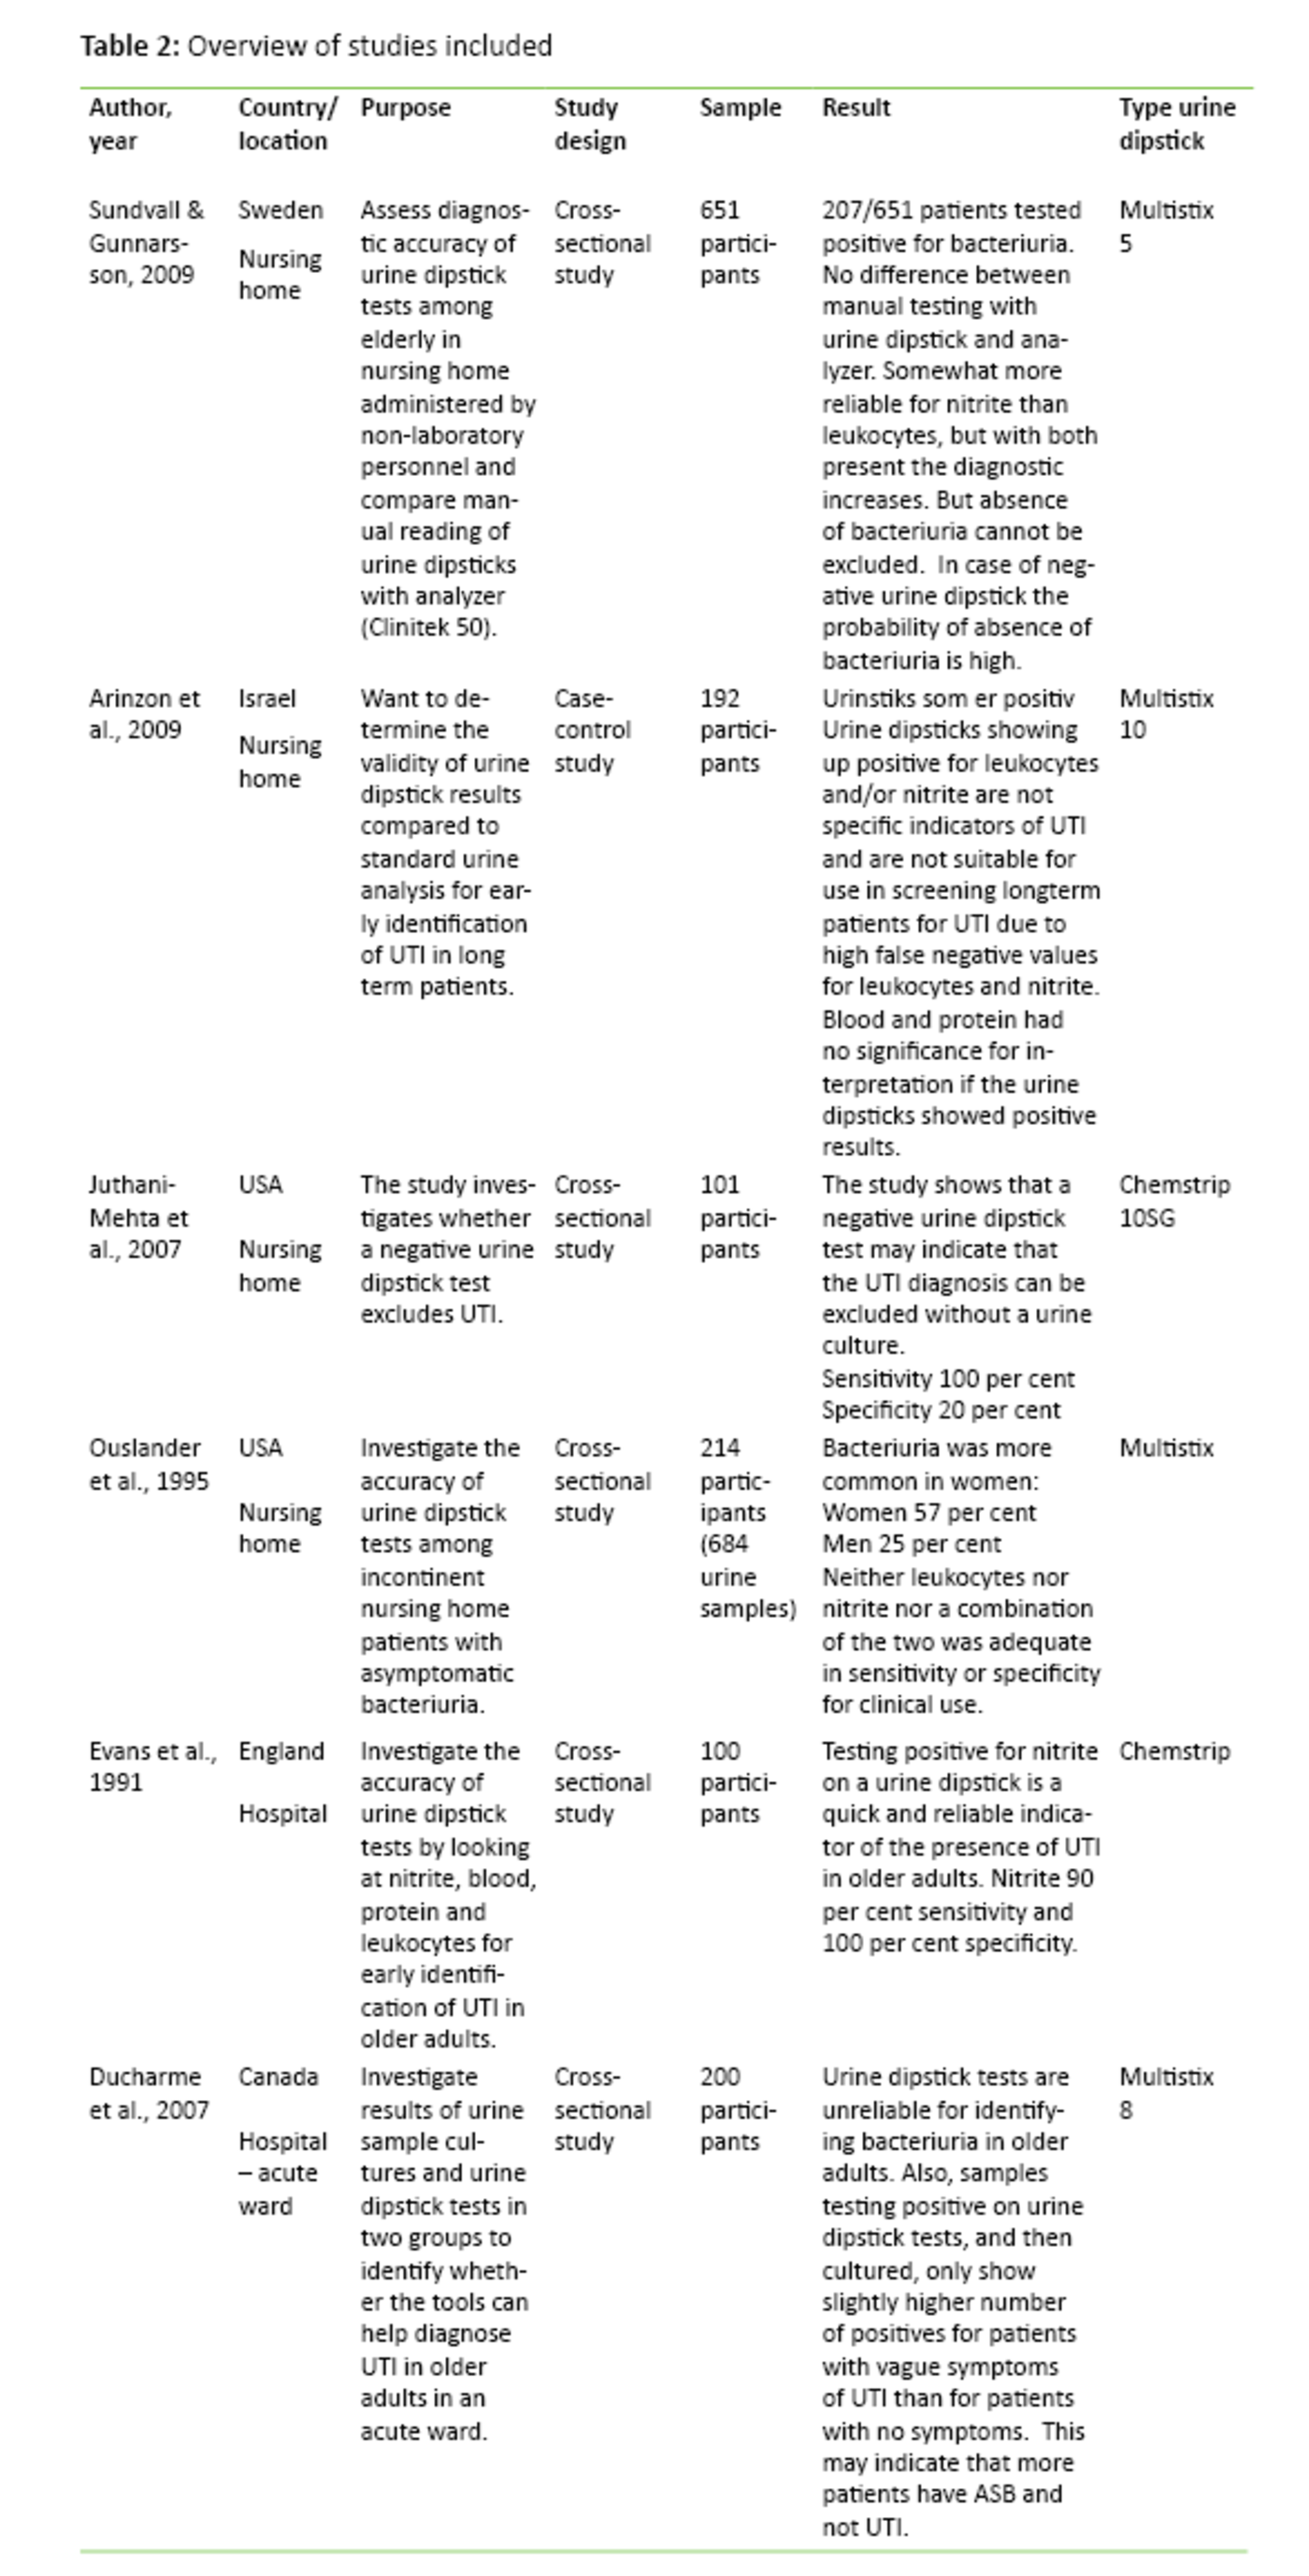 Table 2: Overview of studies included